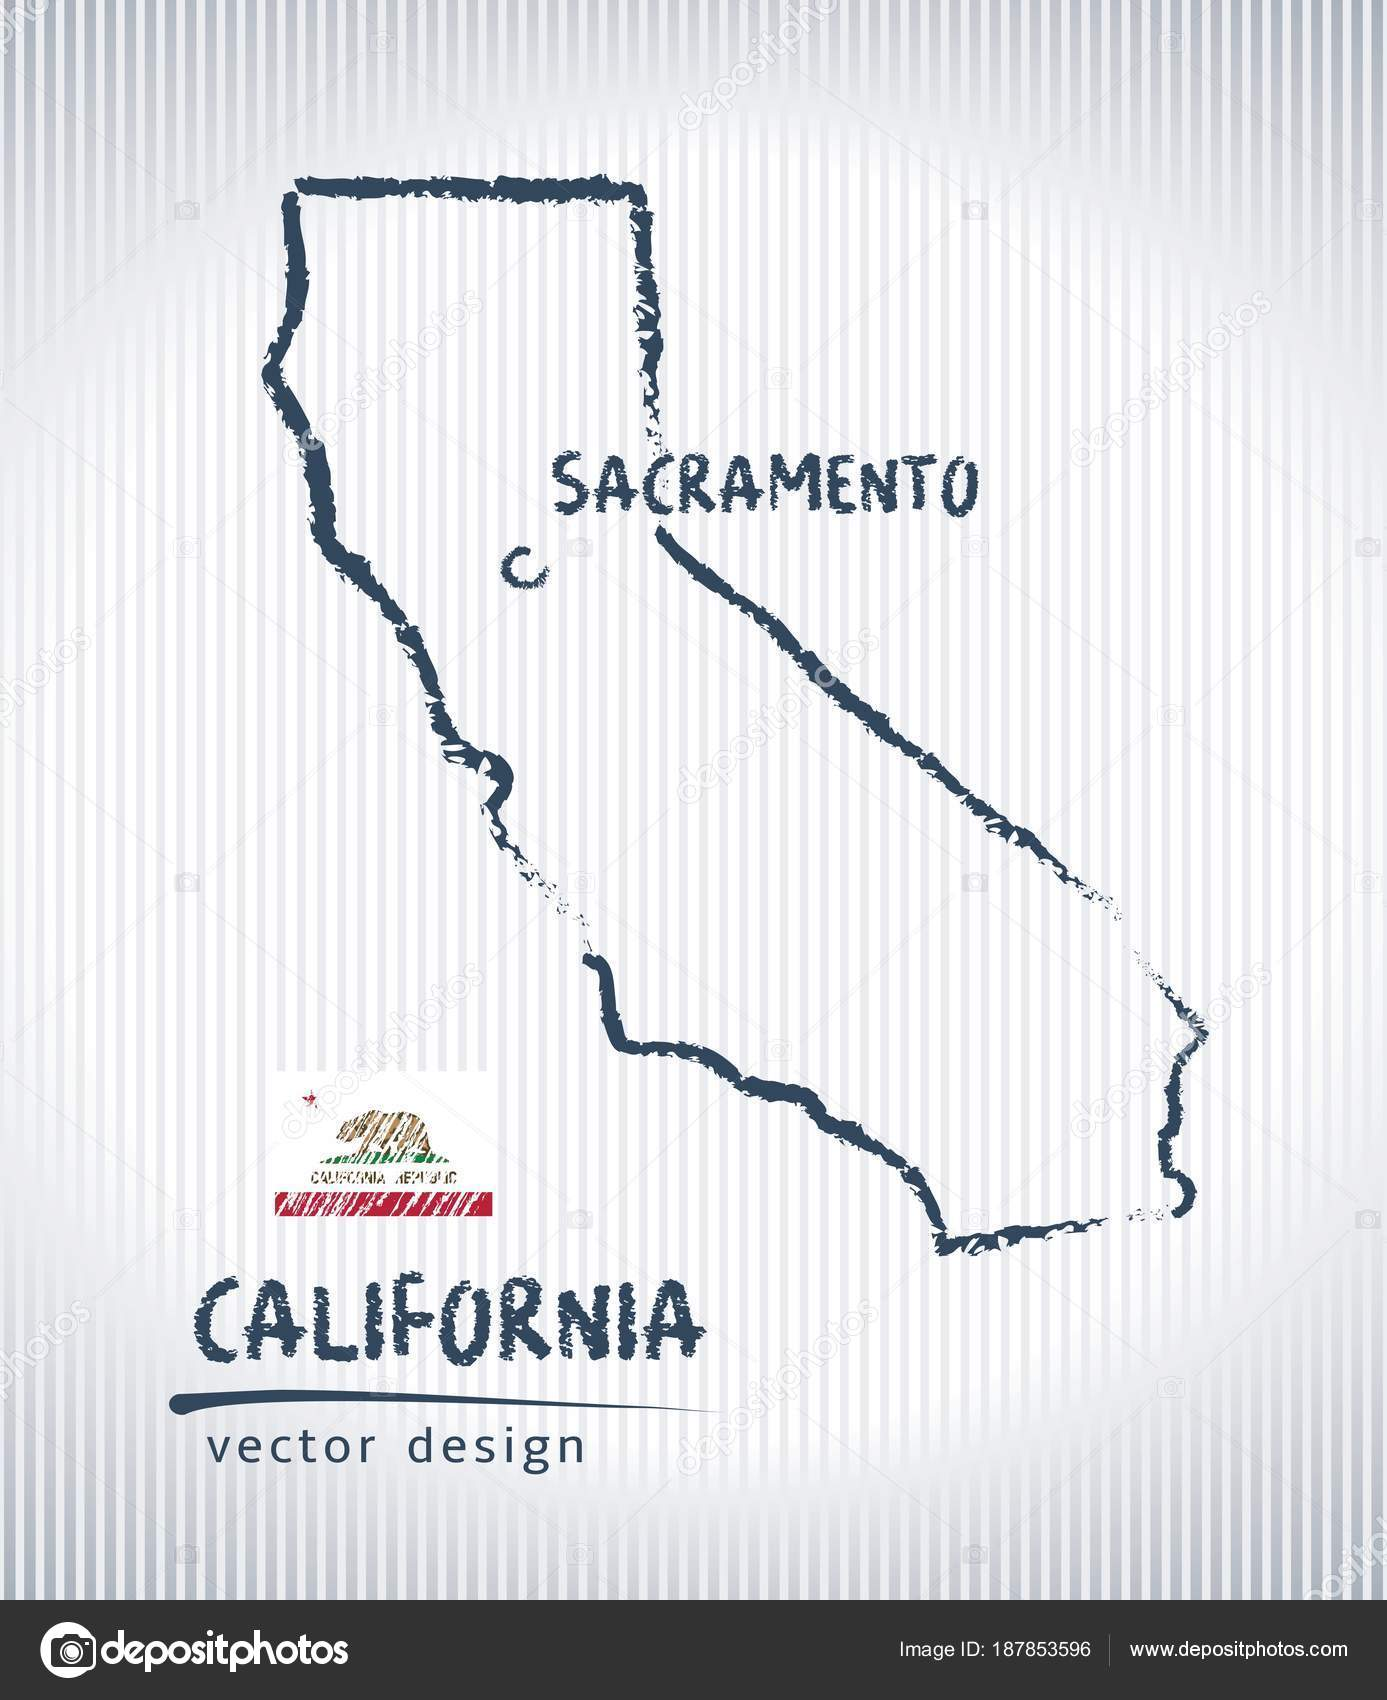 California Vector Chalk Drawing Map Isolated White Background